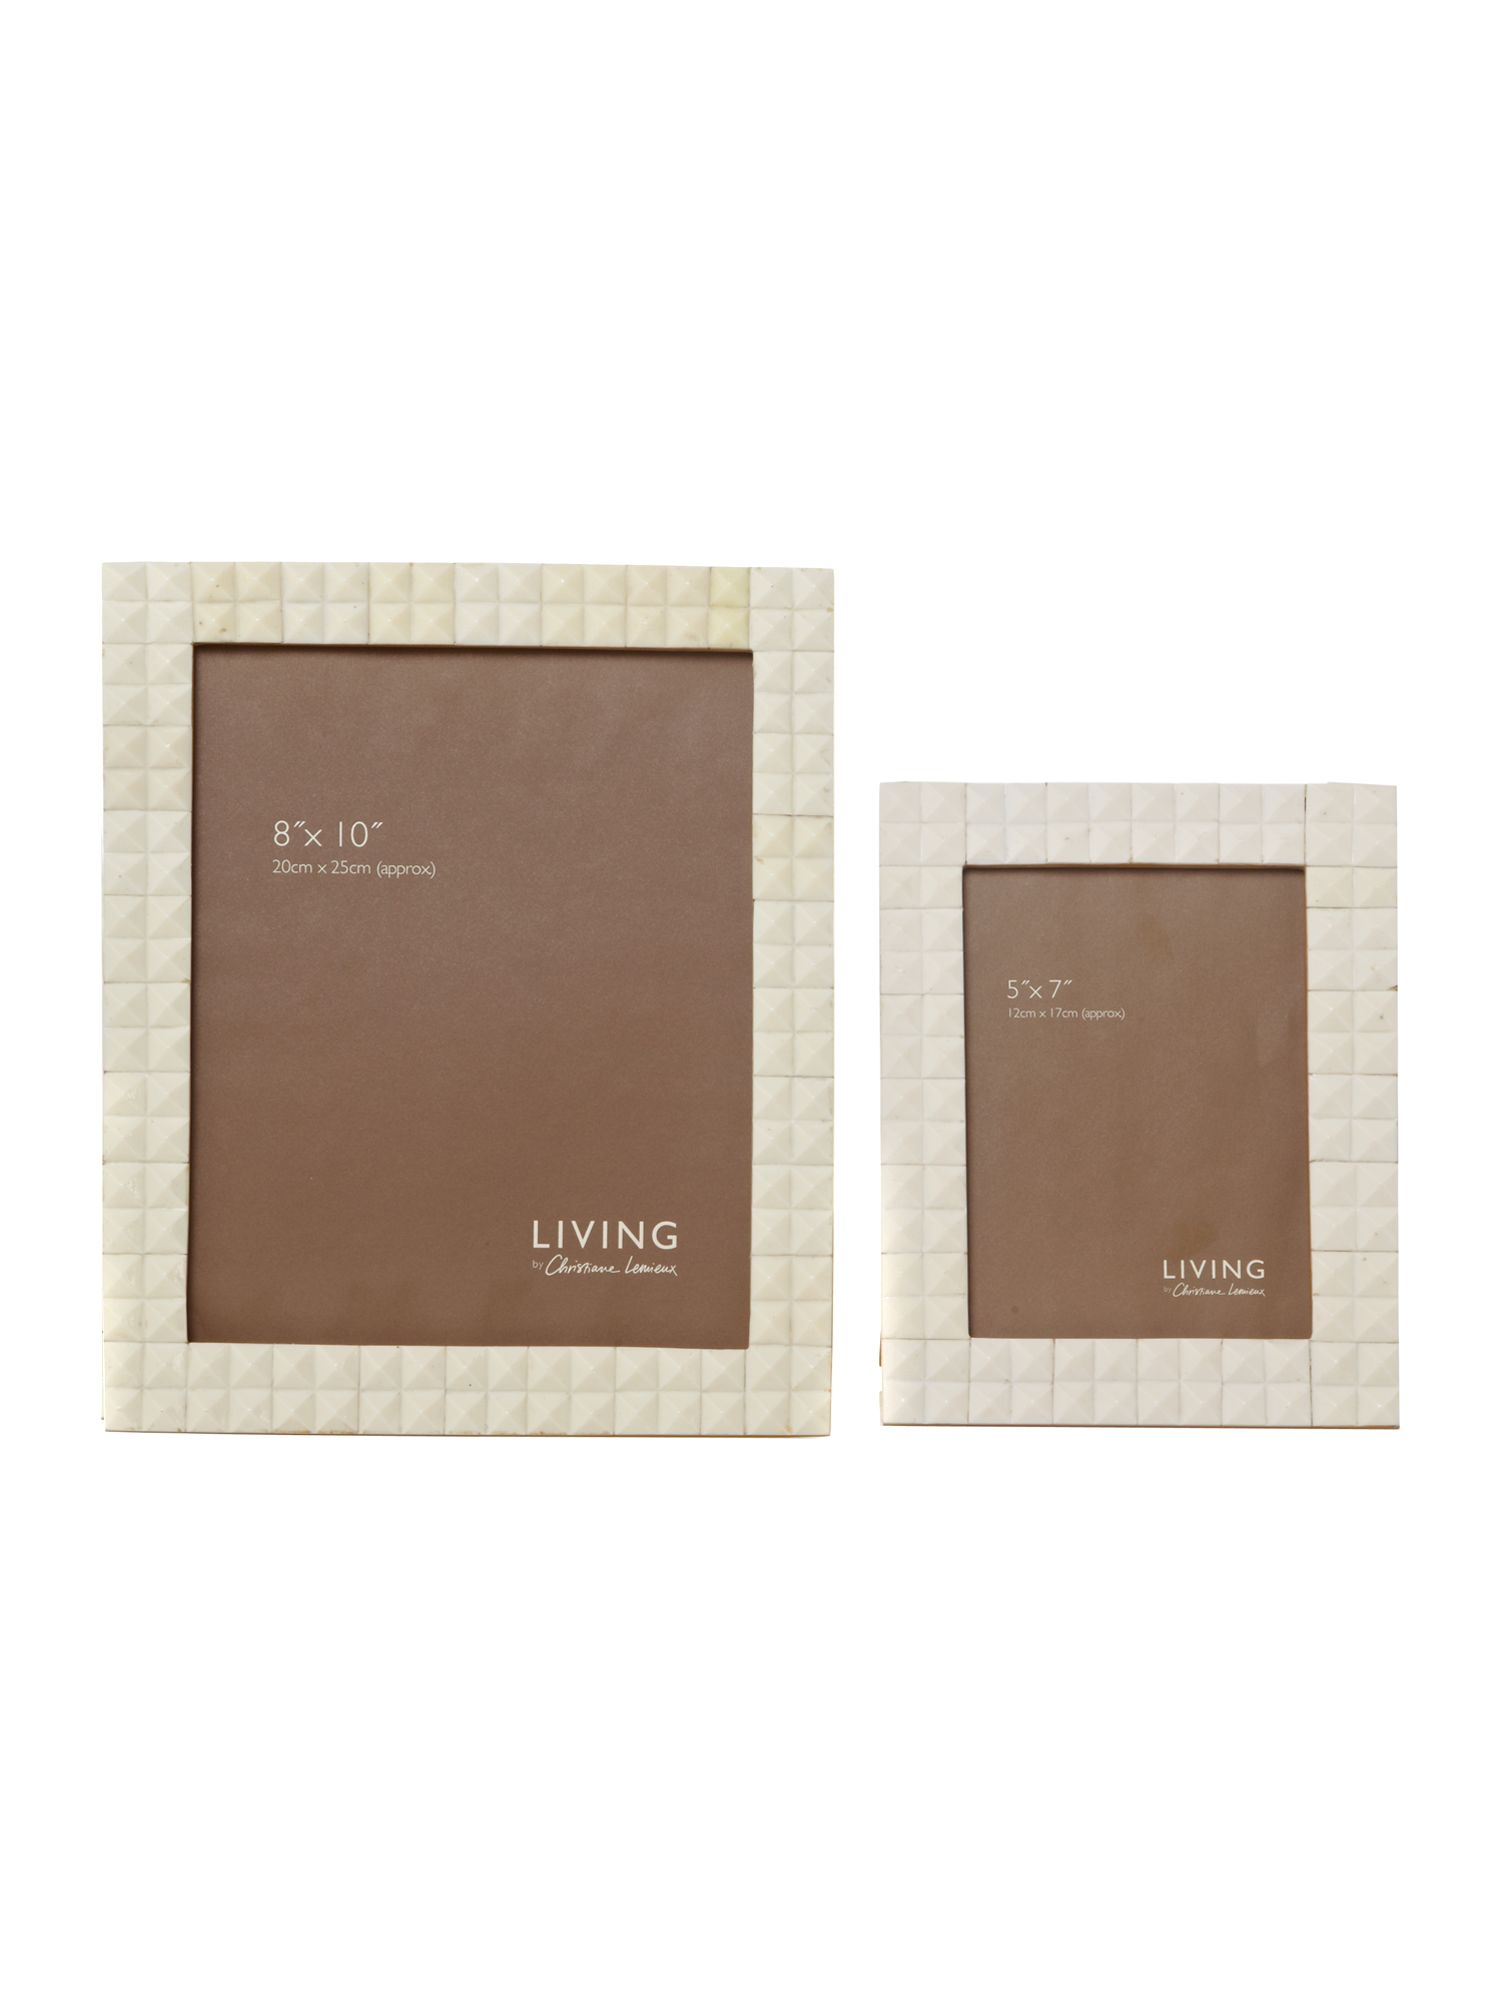 Cream textured photo frames